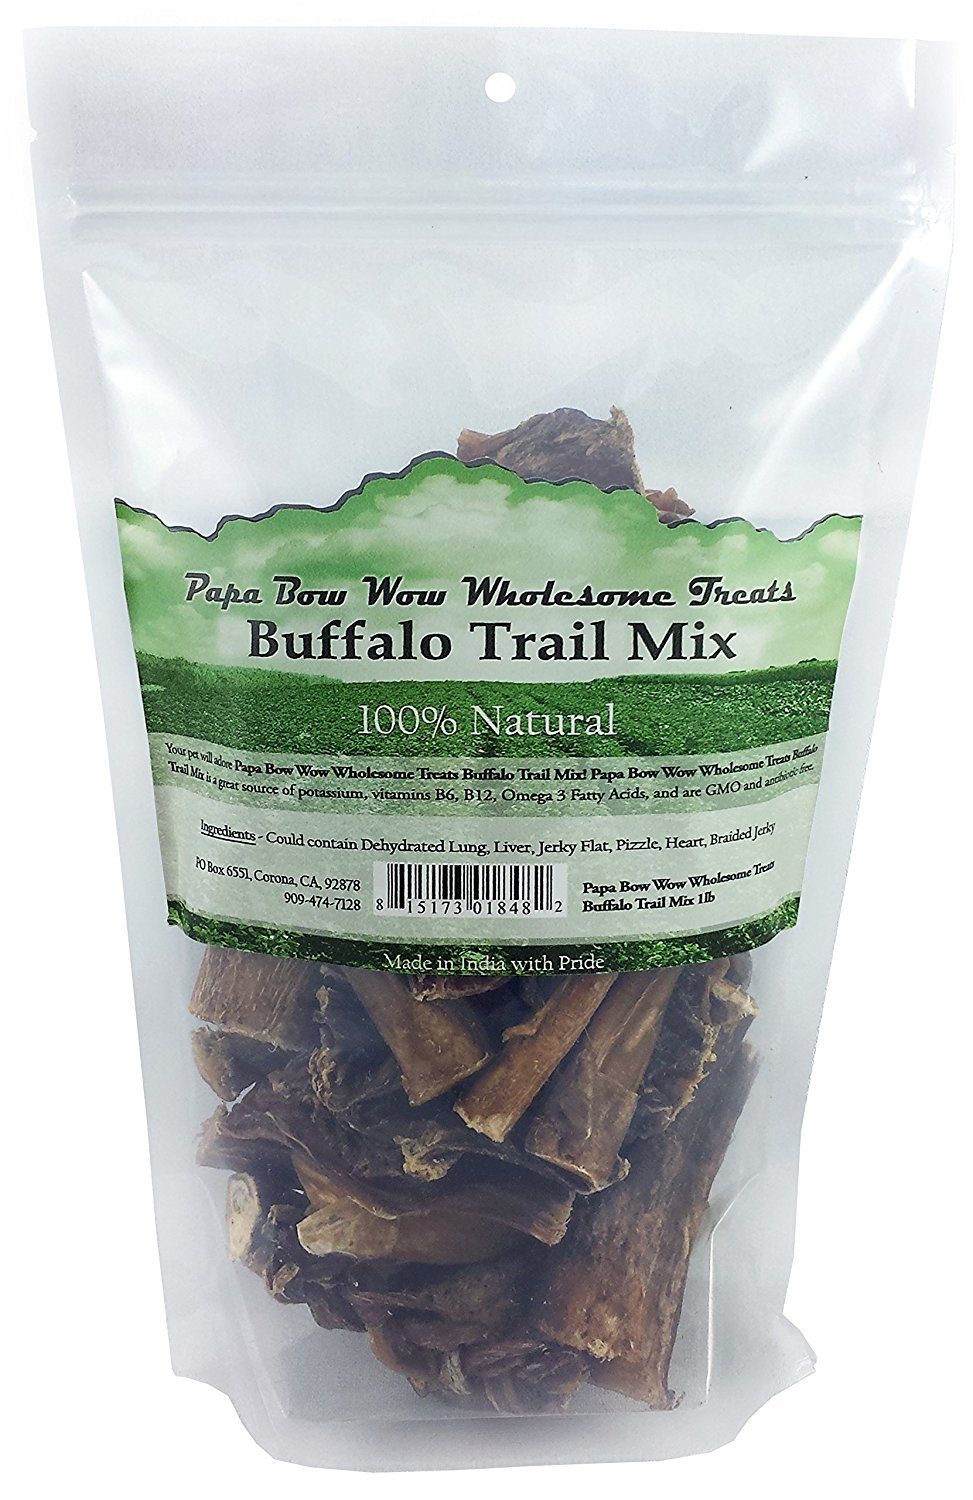 Papa Bow Wow PBW18482 Buffalo Trail Mix Dog Treats - 1 lbs